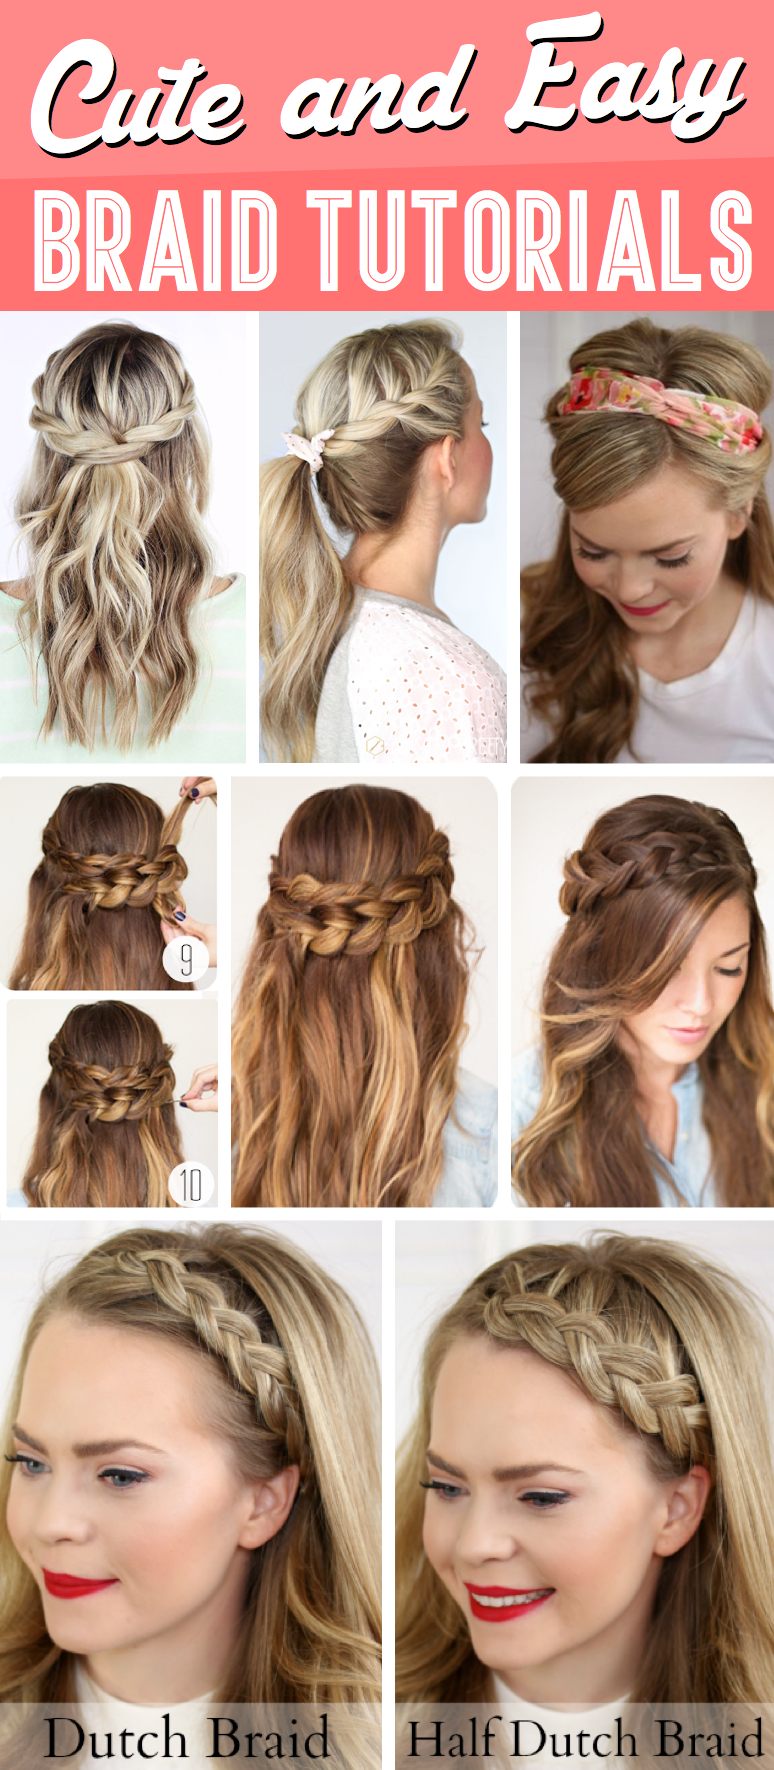 30  Cute and Easy Braid Tutorials That Are Perfect For Any Occasion     30  Cute and Easy Braid Tutorials That Are Perfect For Any Occasion